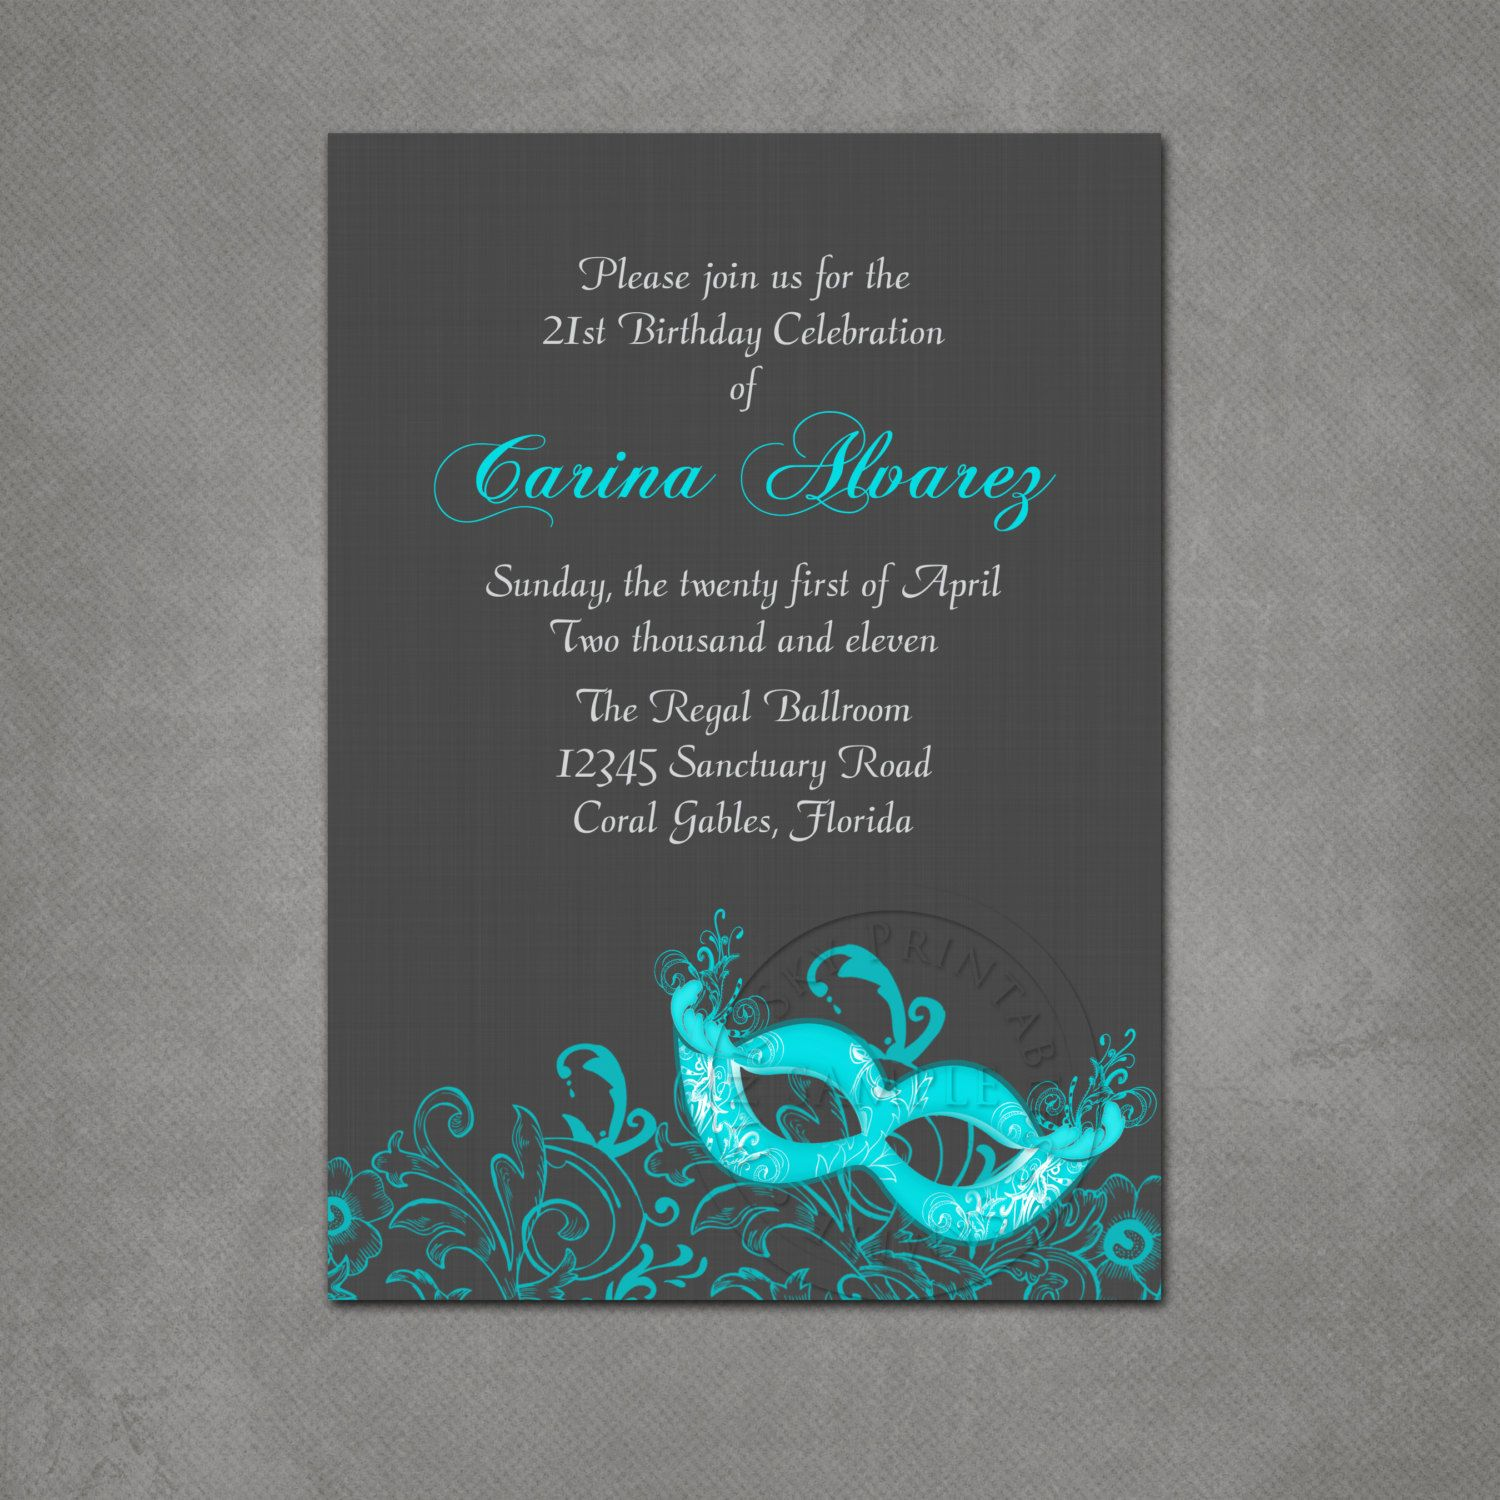 golden enigma mask invitation-masquerade prom or party invitation, Wedding invitations